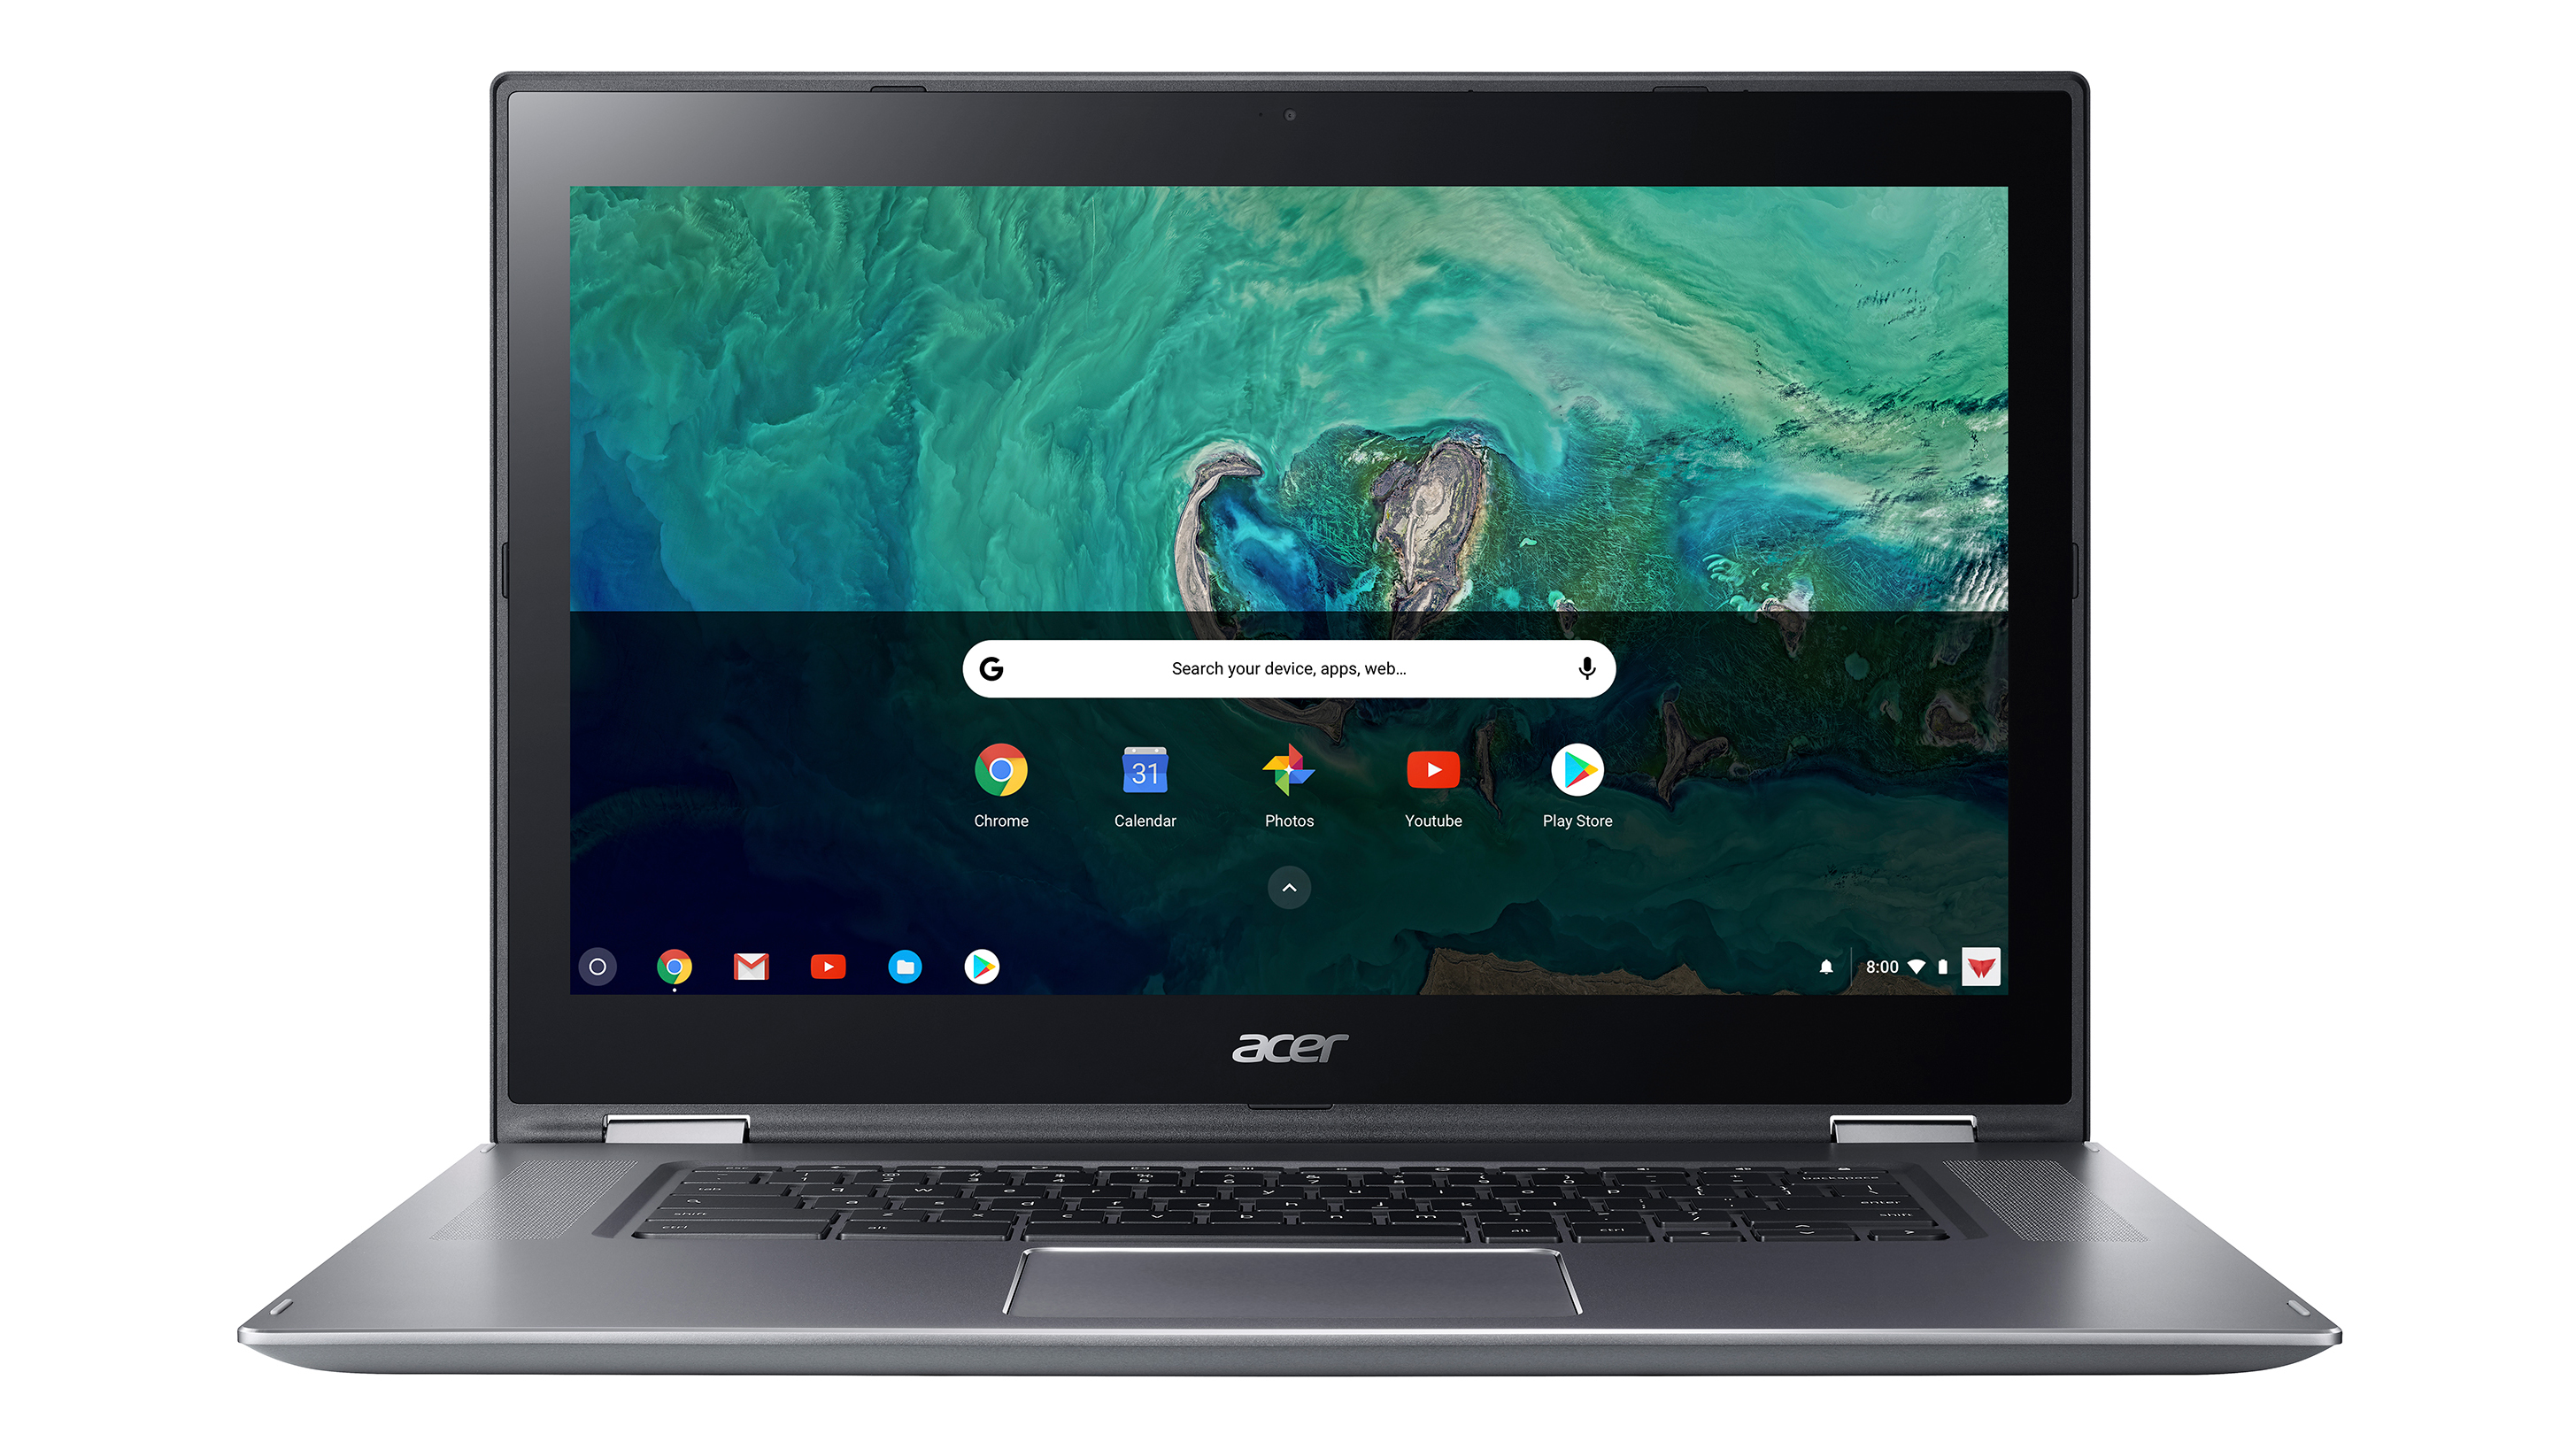 Acer Chromebook Spin 15 is the world's first 15-inch, 2-in-1